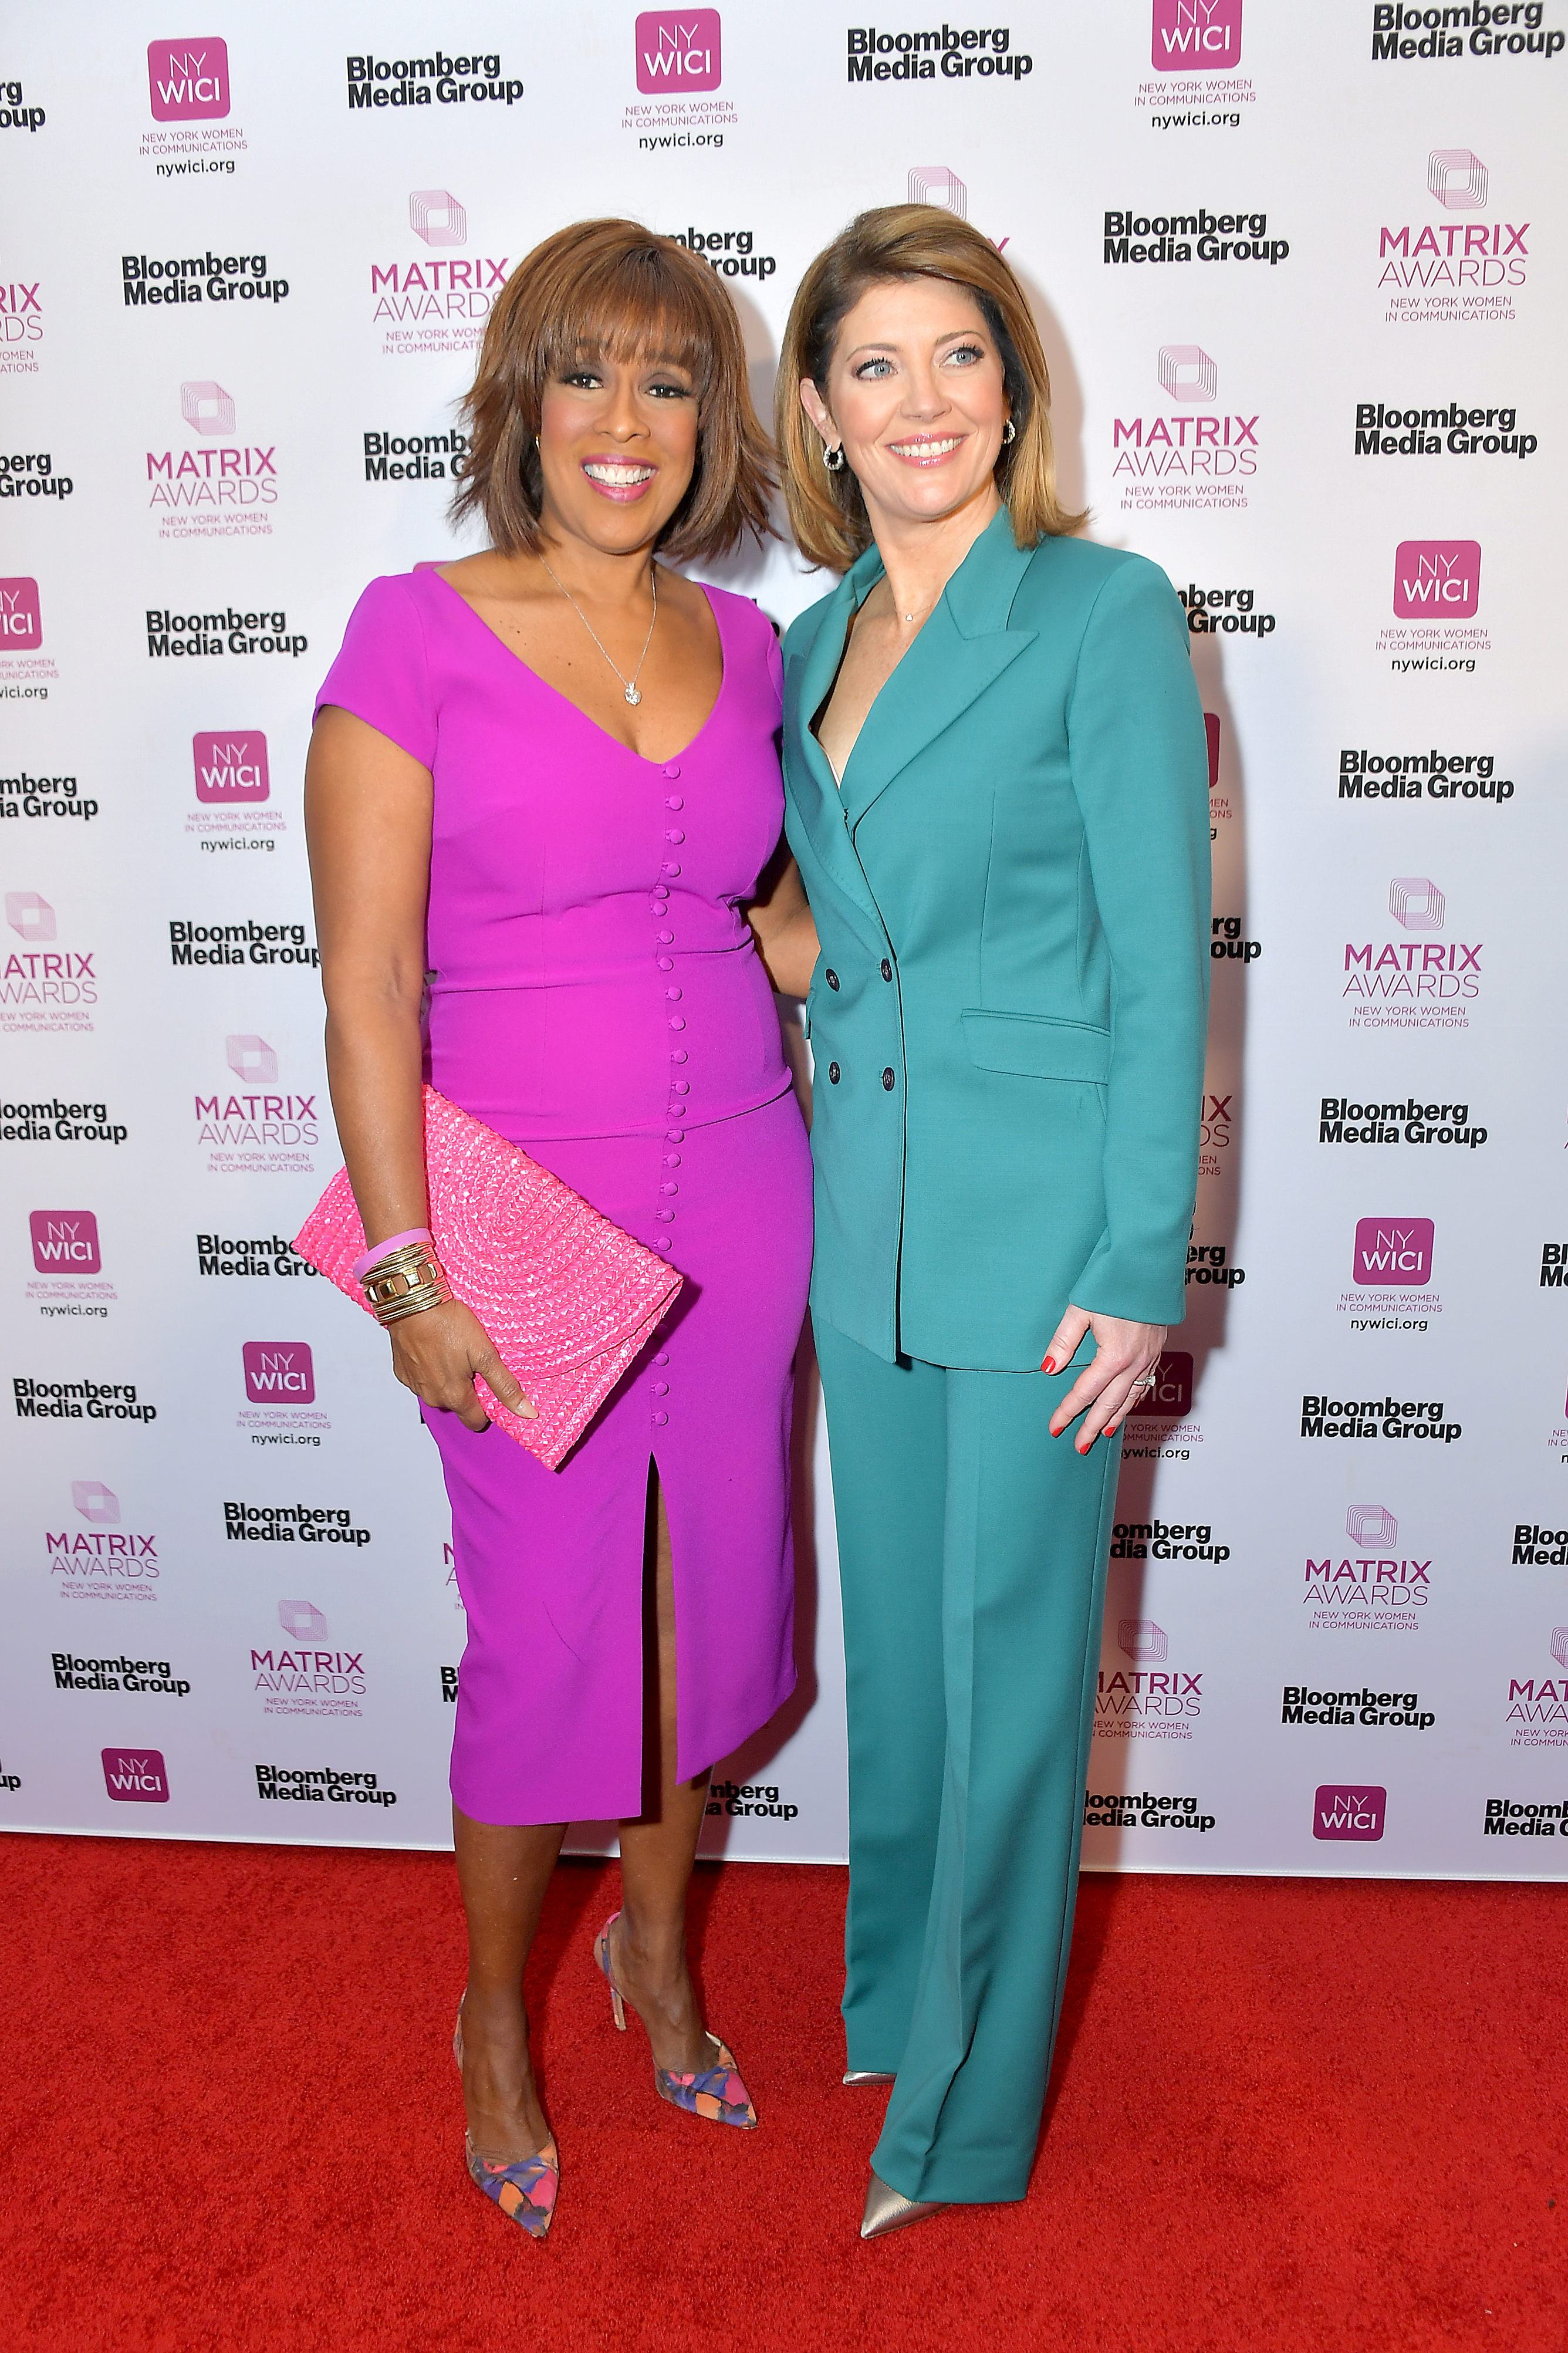 Gayle King (L) and honoree Norah O'Donnell attend the 2019 Matrix Awards at the Sheraton New York Times Square on May 06, 2019 in New York City. (Photo by Michael Loccisano/Getty Images)